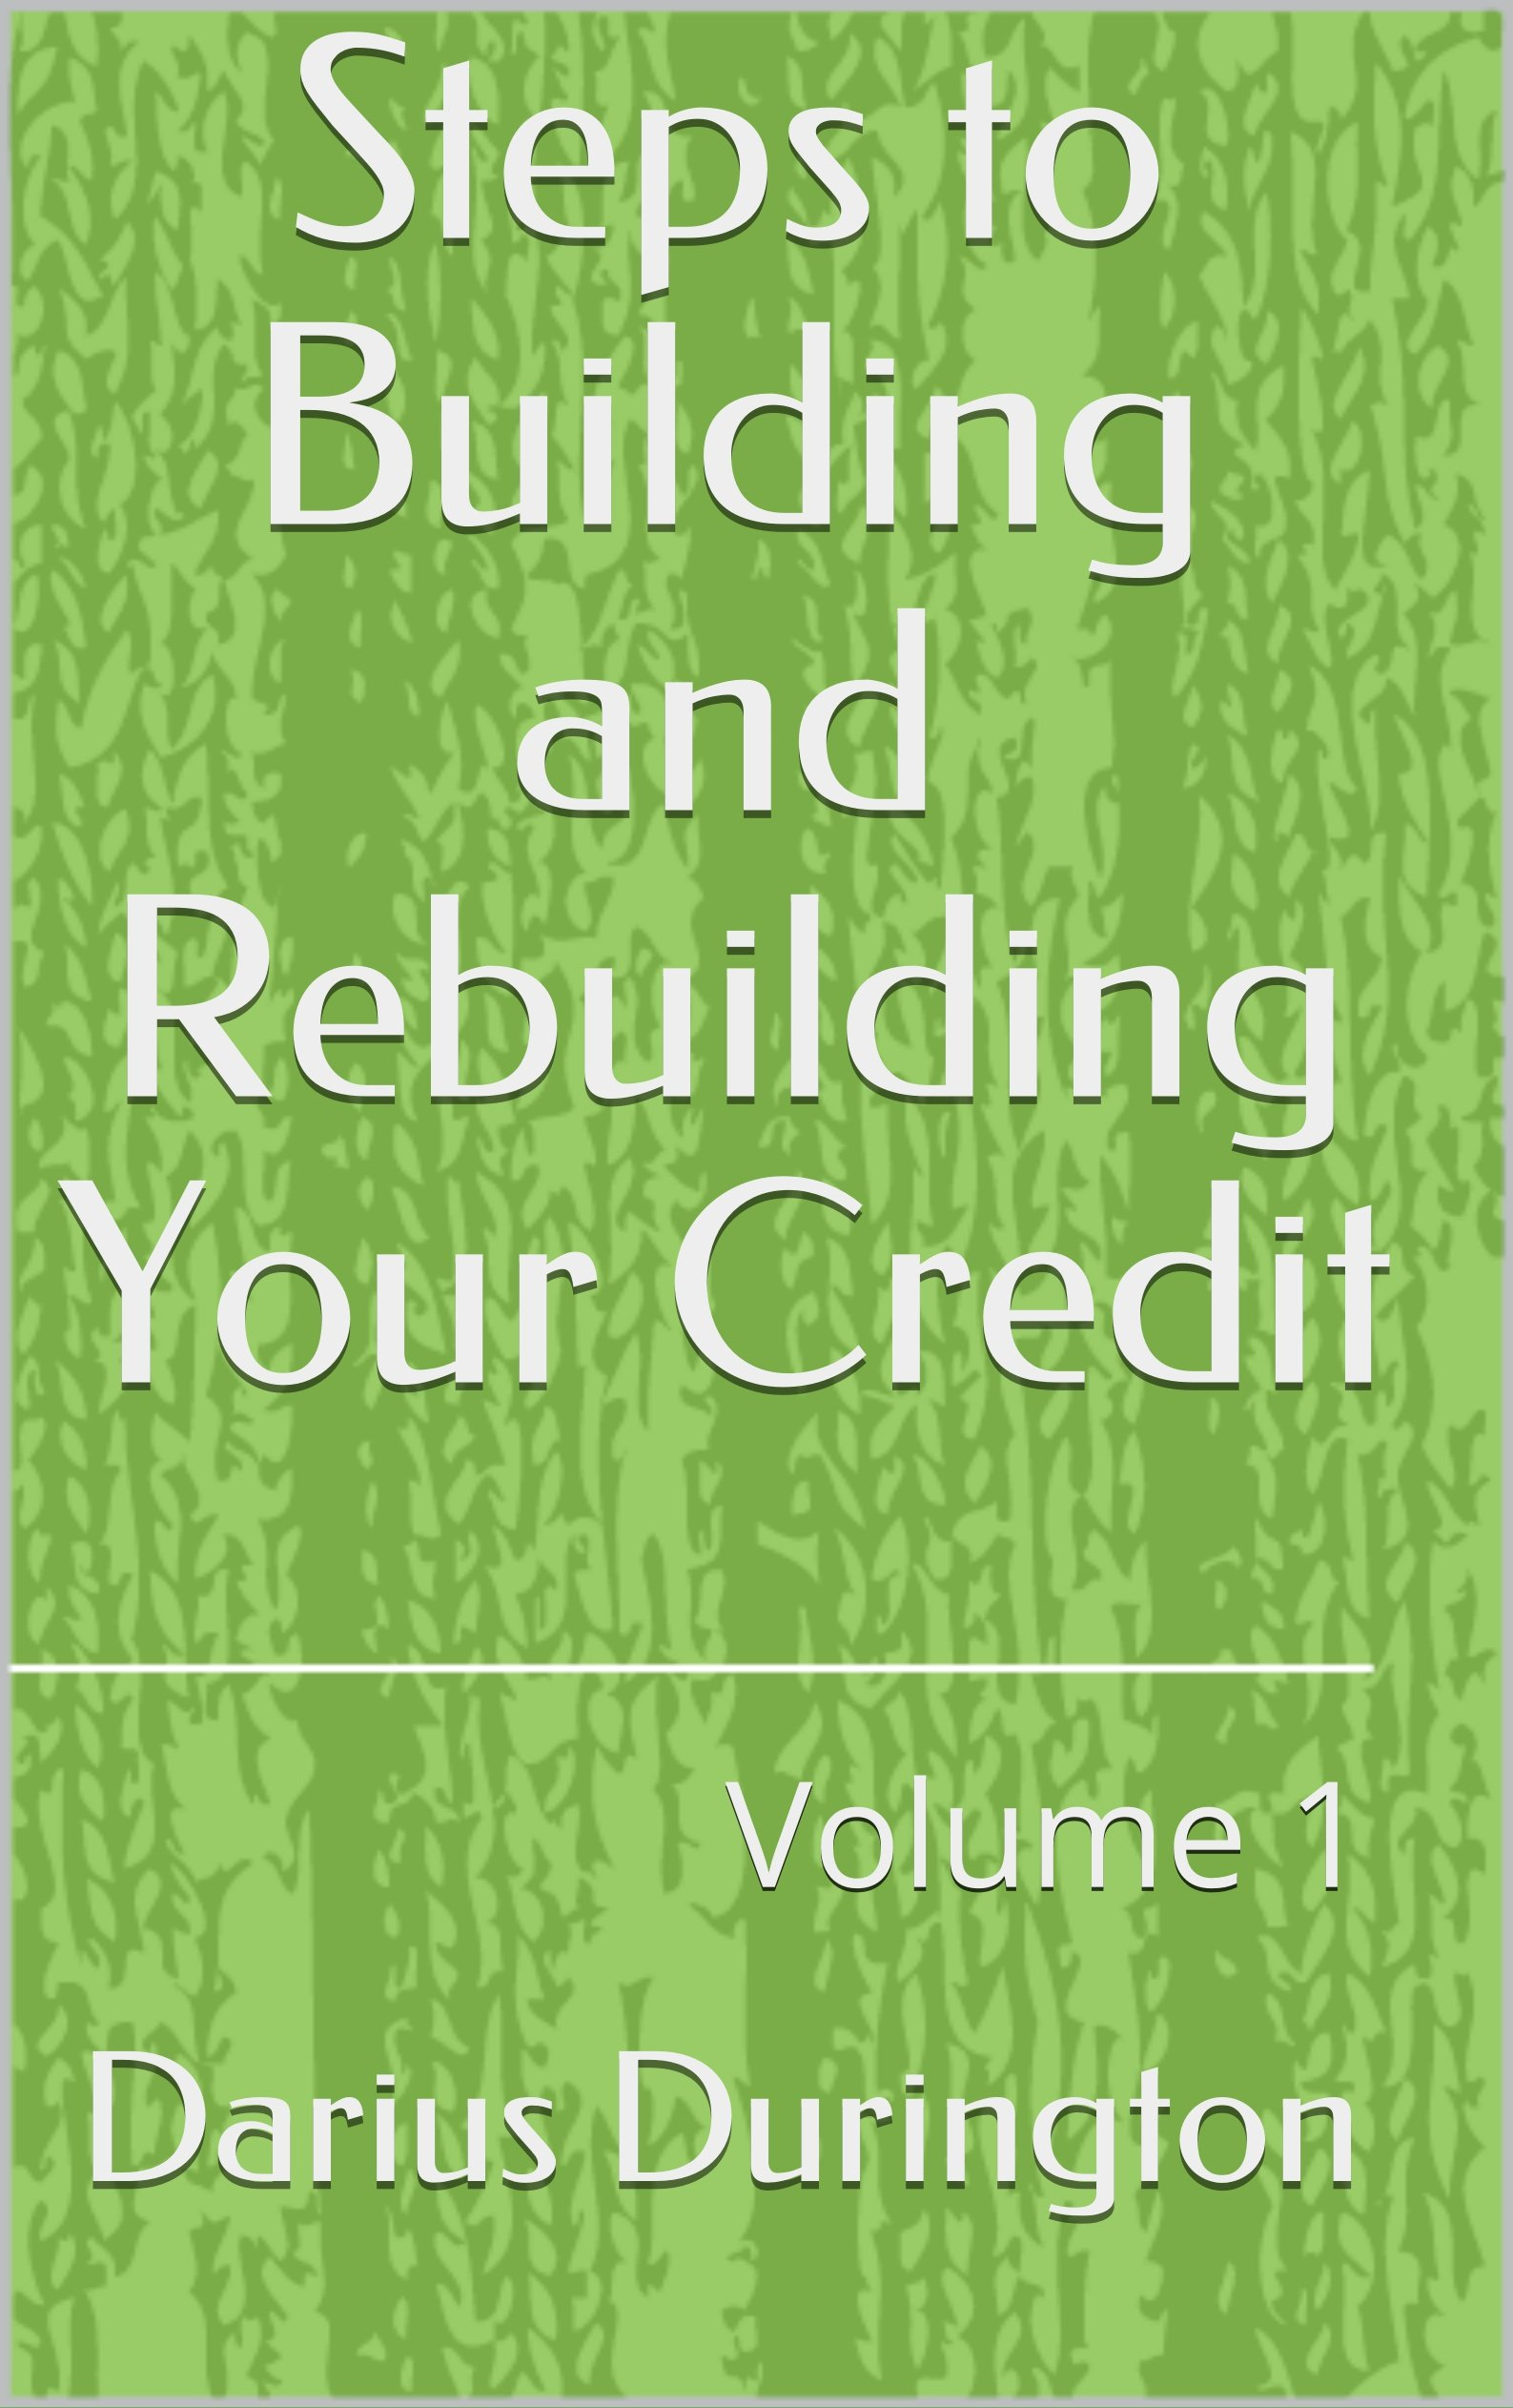 Steps to Building and Rebuilding Your Credit: Volume 1